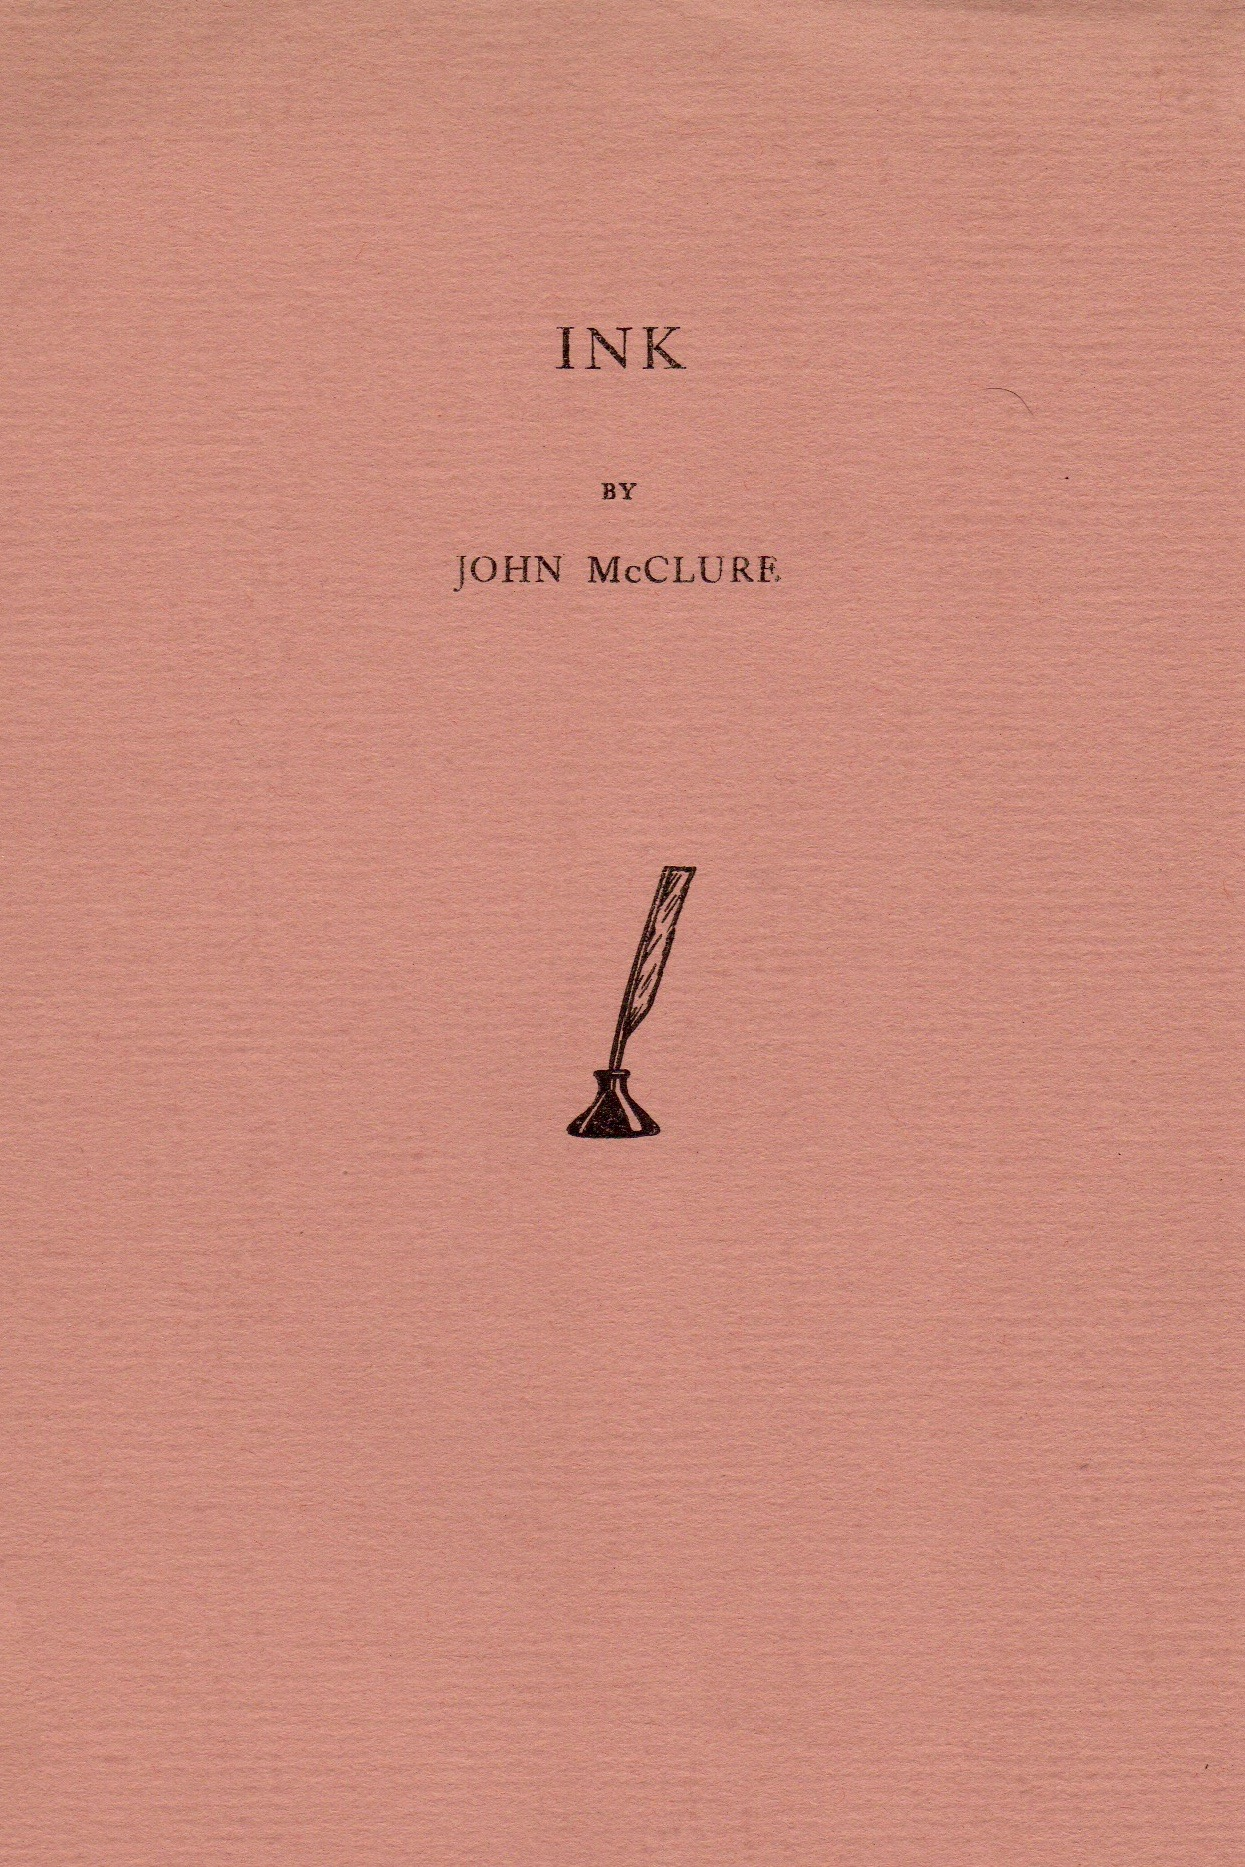 INK cover.jpeg